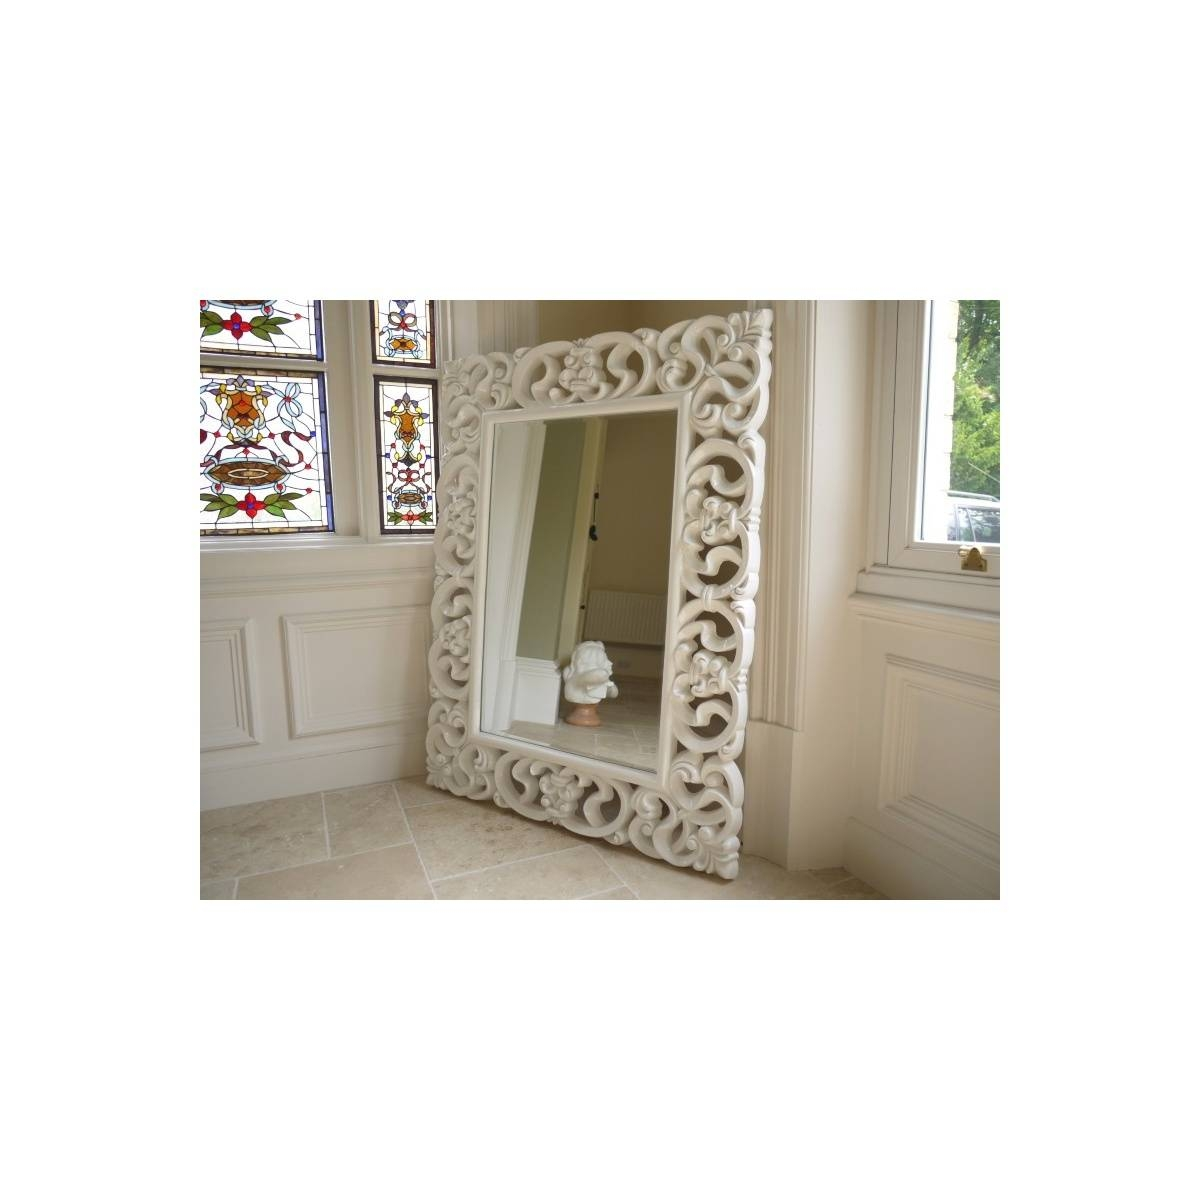 Buy Large French White Ornate Wall Mirror | Swanky Interiors pertaining to Large Ornate White Mirrors (Image 8 of 25)